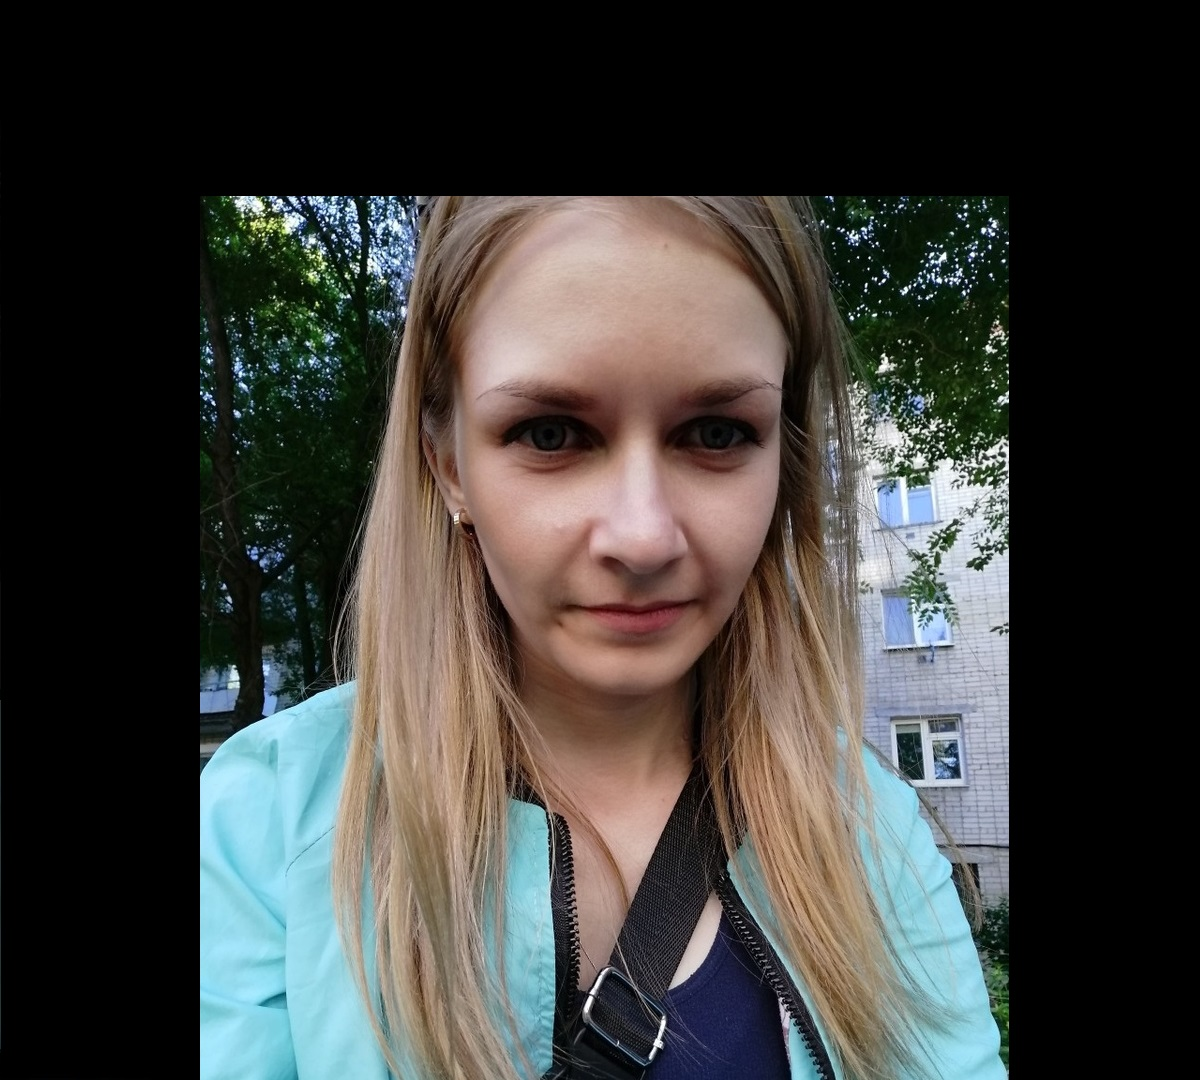 Single & Divorced Looking for SomeOne: Czech Republic